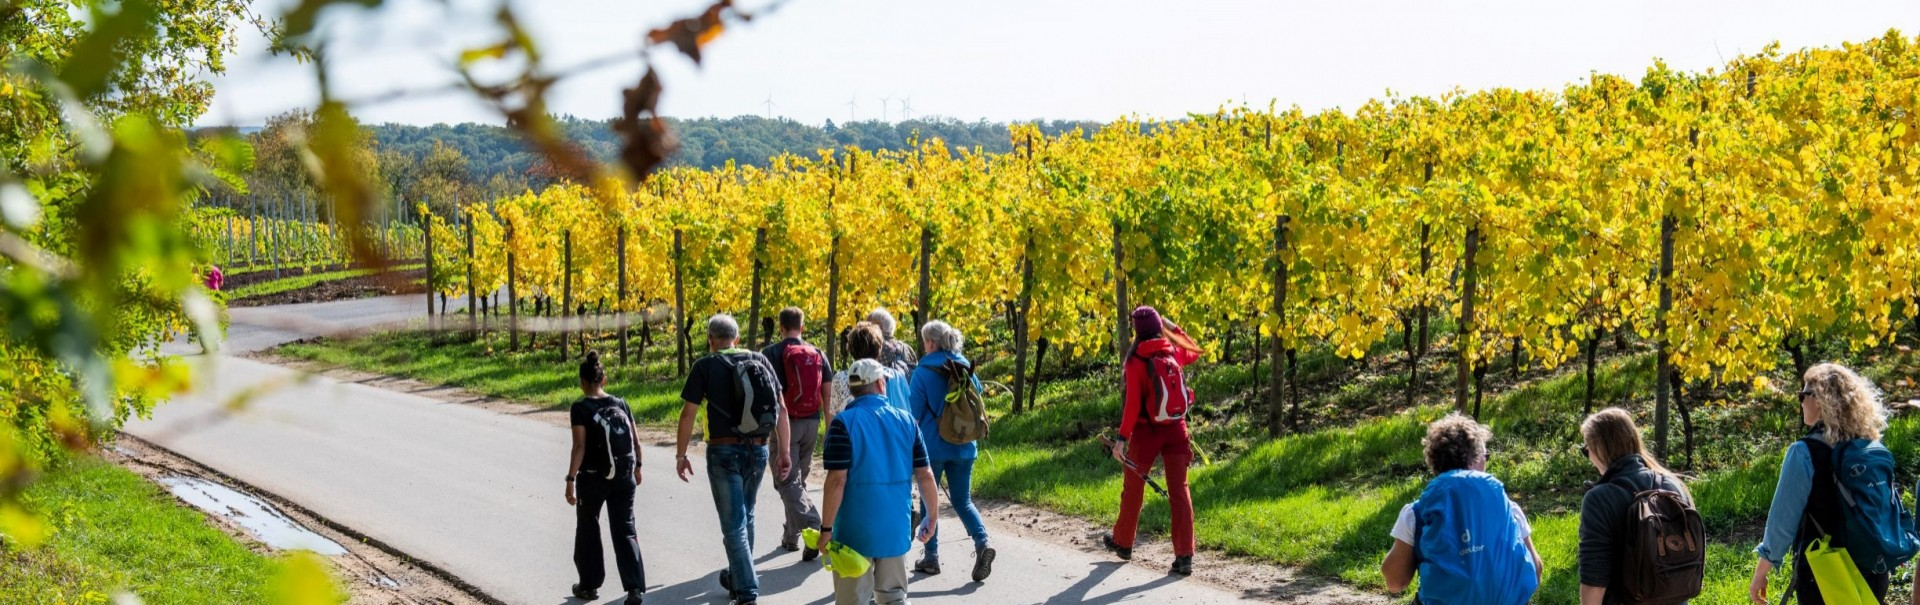 Harvest Hiking Vineyards Harvest  ©Visit Moselle Luxembourg